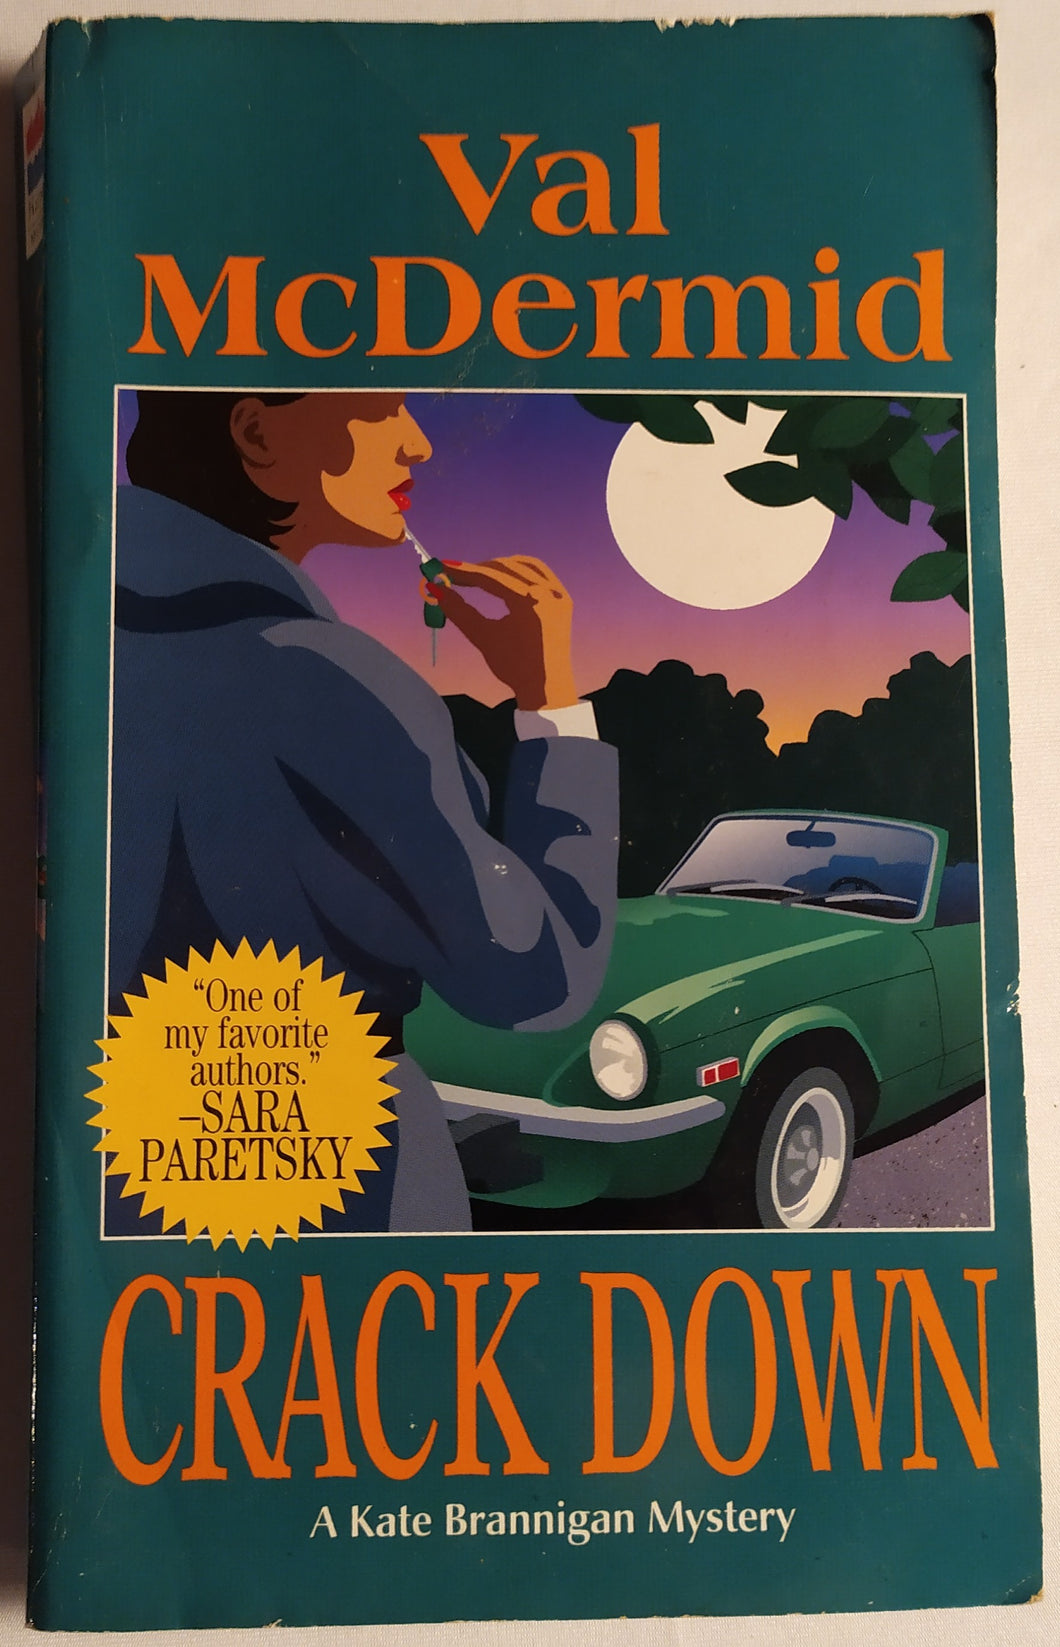 Crackdown - A Kate Brannigan Mystery by Val McDermid